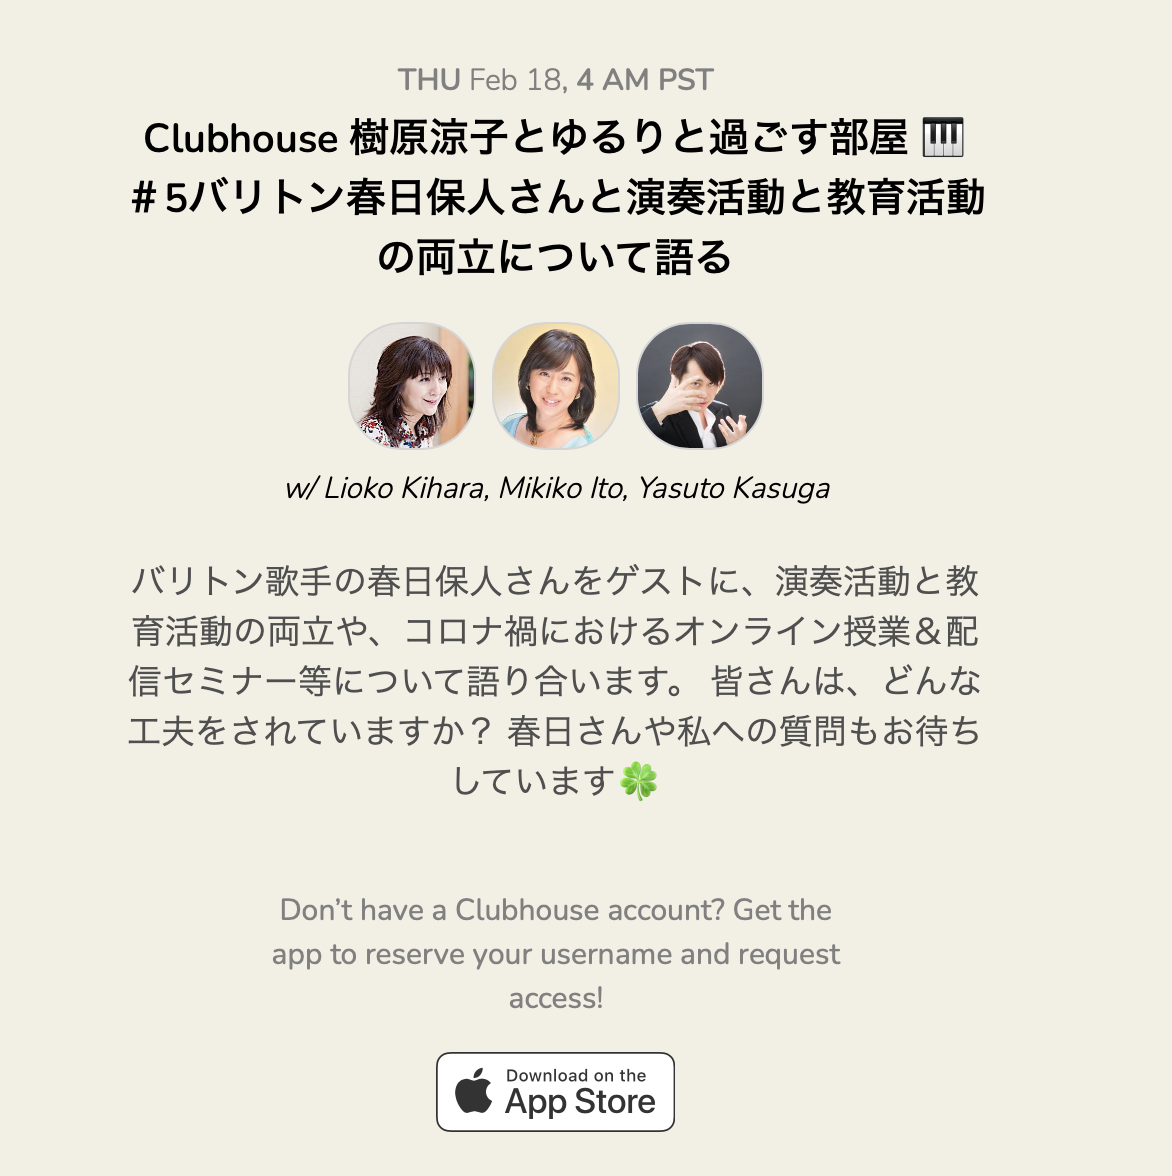 Clubhouse 樹原涼子とゆるりと過ごす部屋 🎹#5バリトン春日保人さんと演奏活動と教育活動の両立について語る